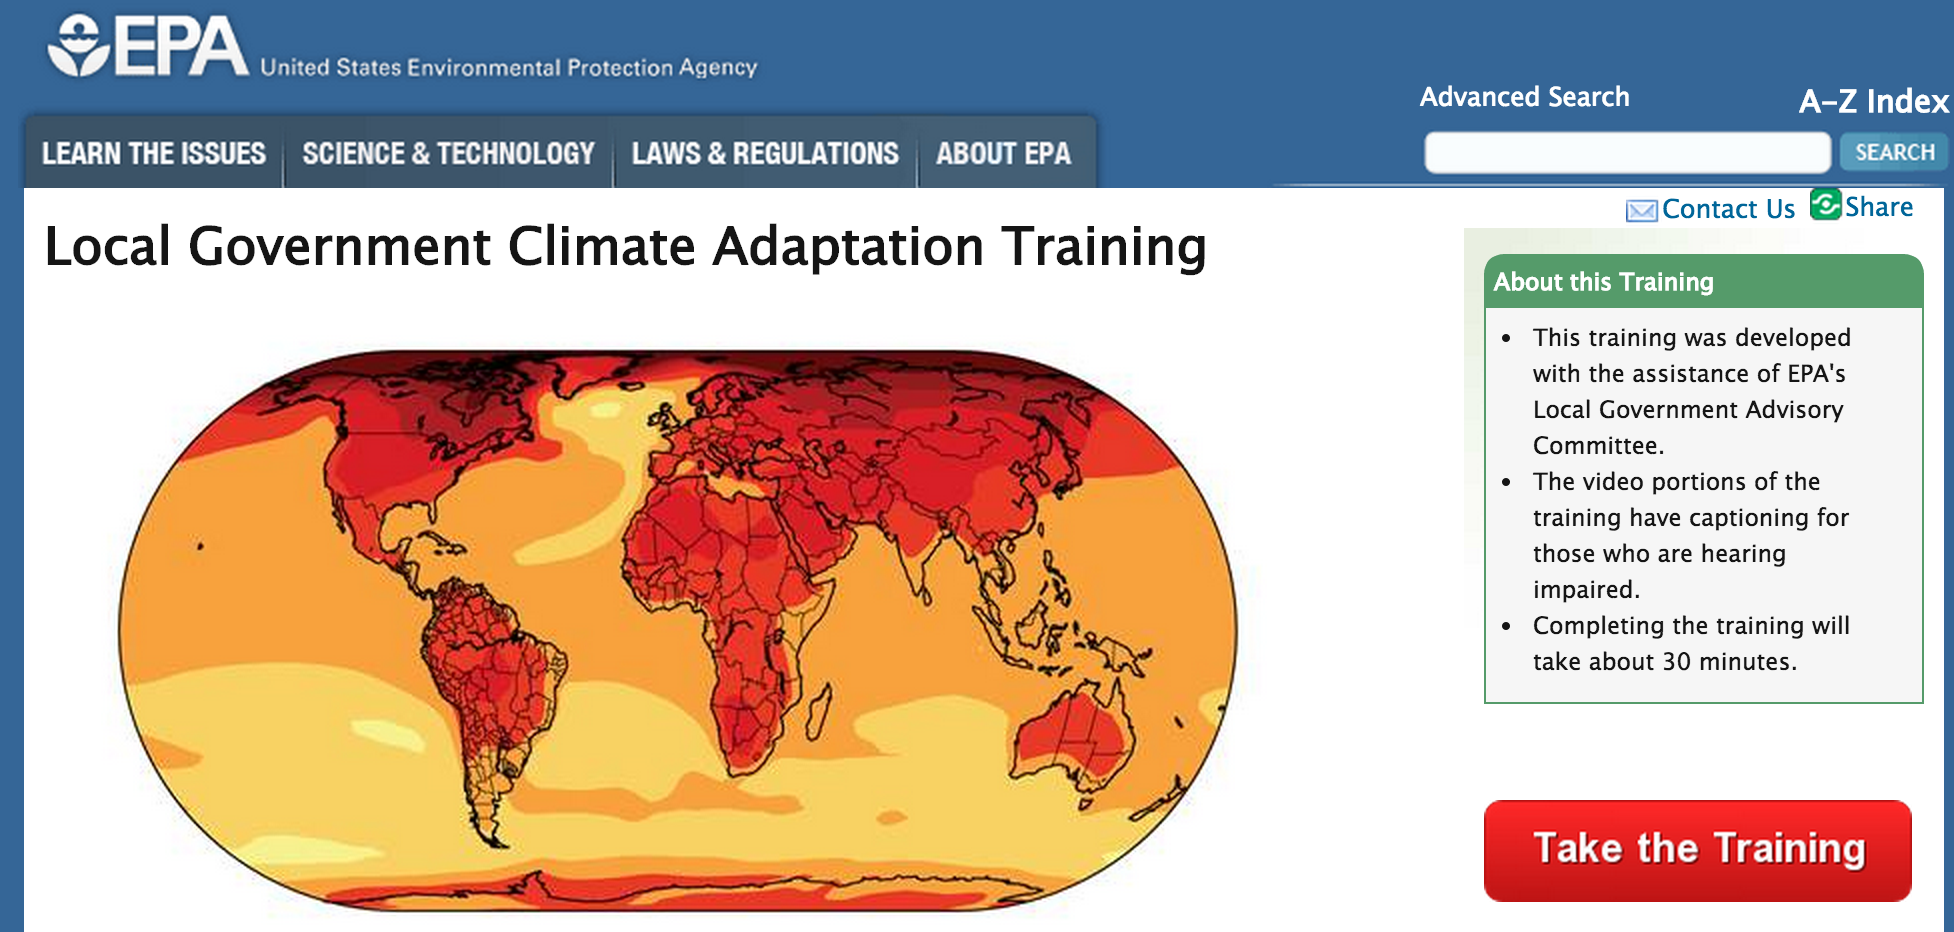 Local Government Climate Adaptation Training